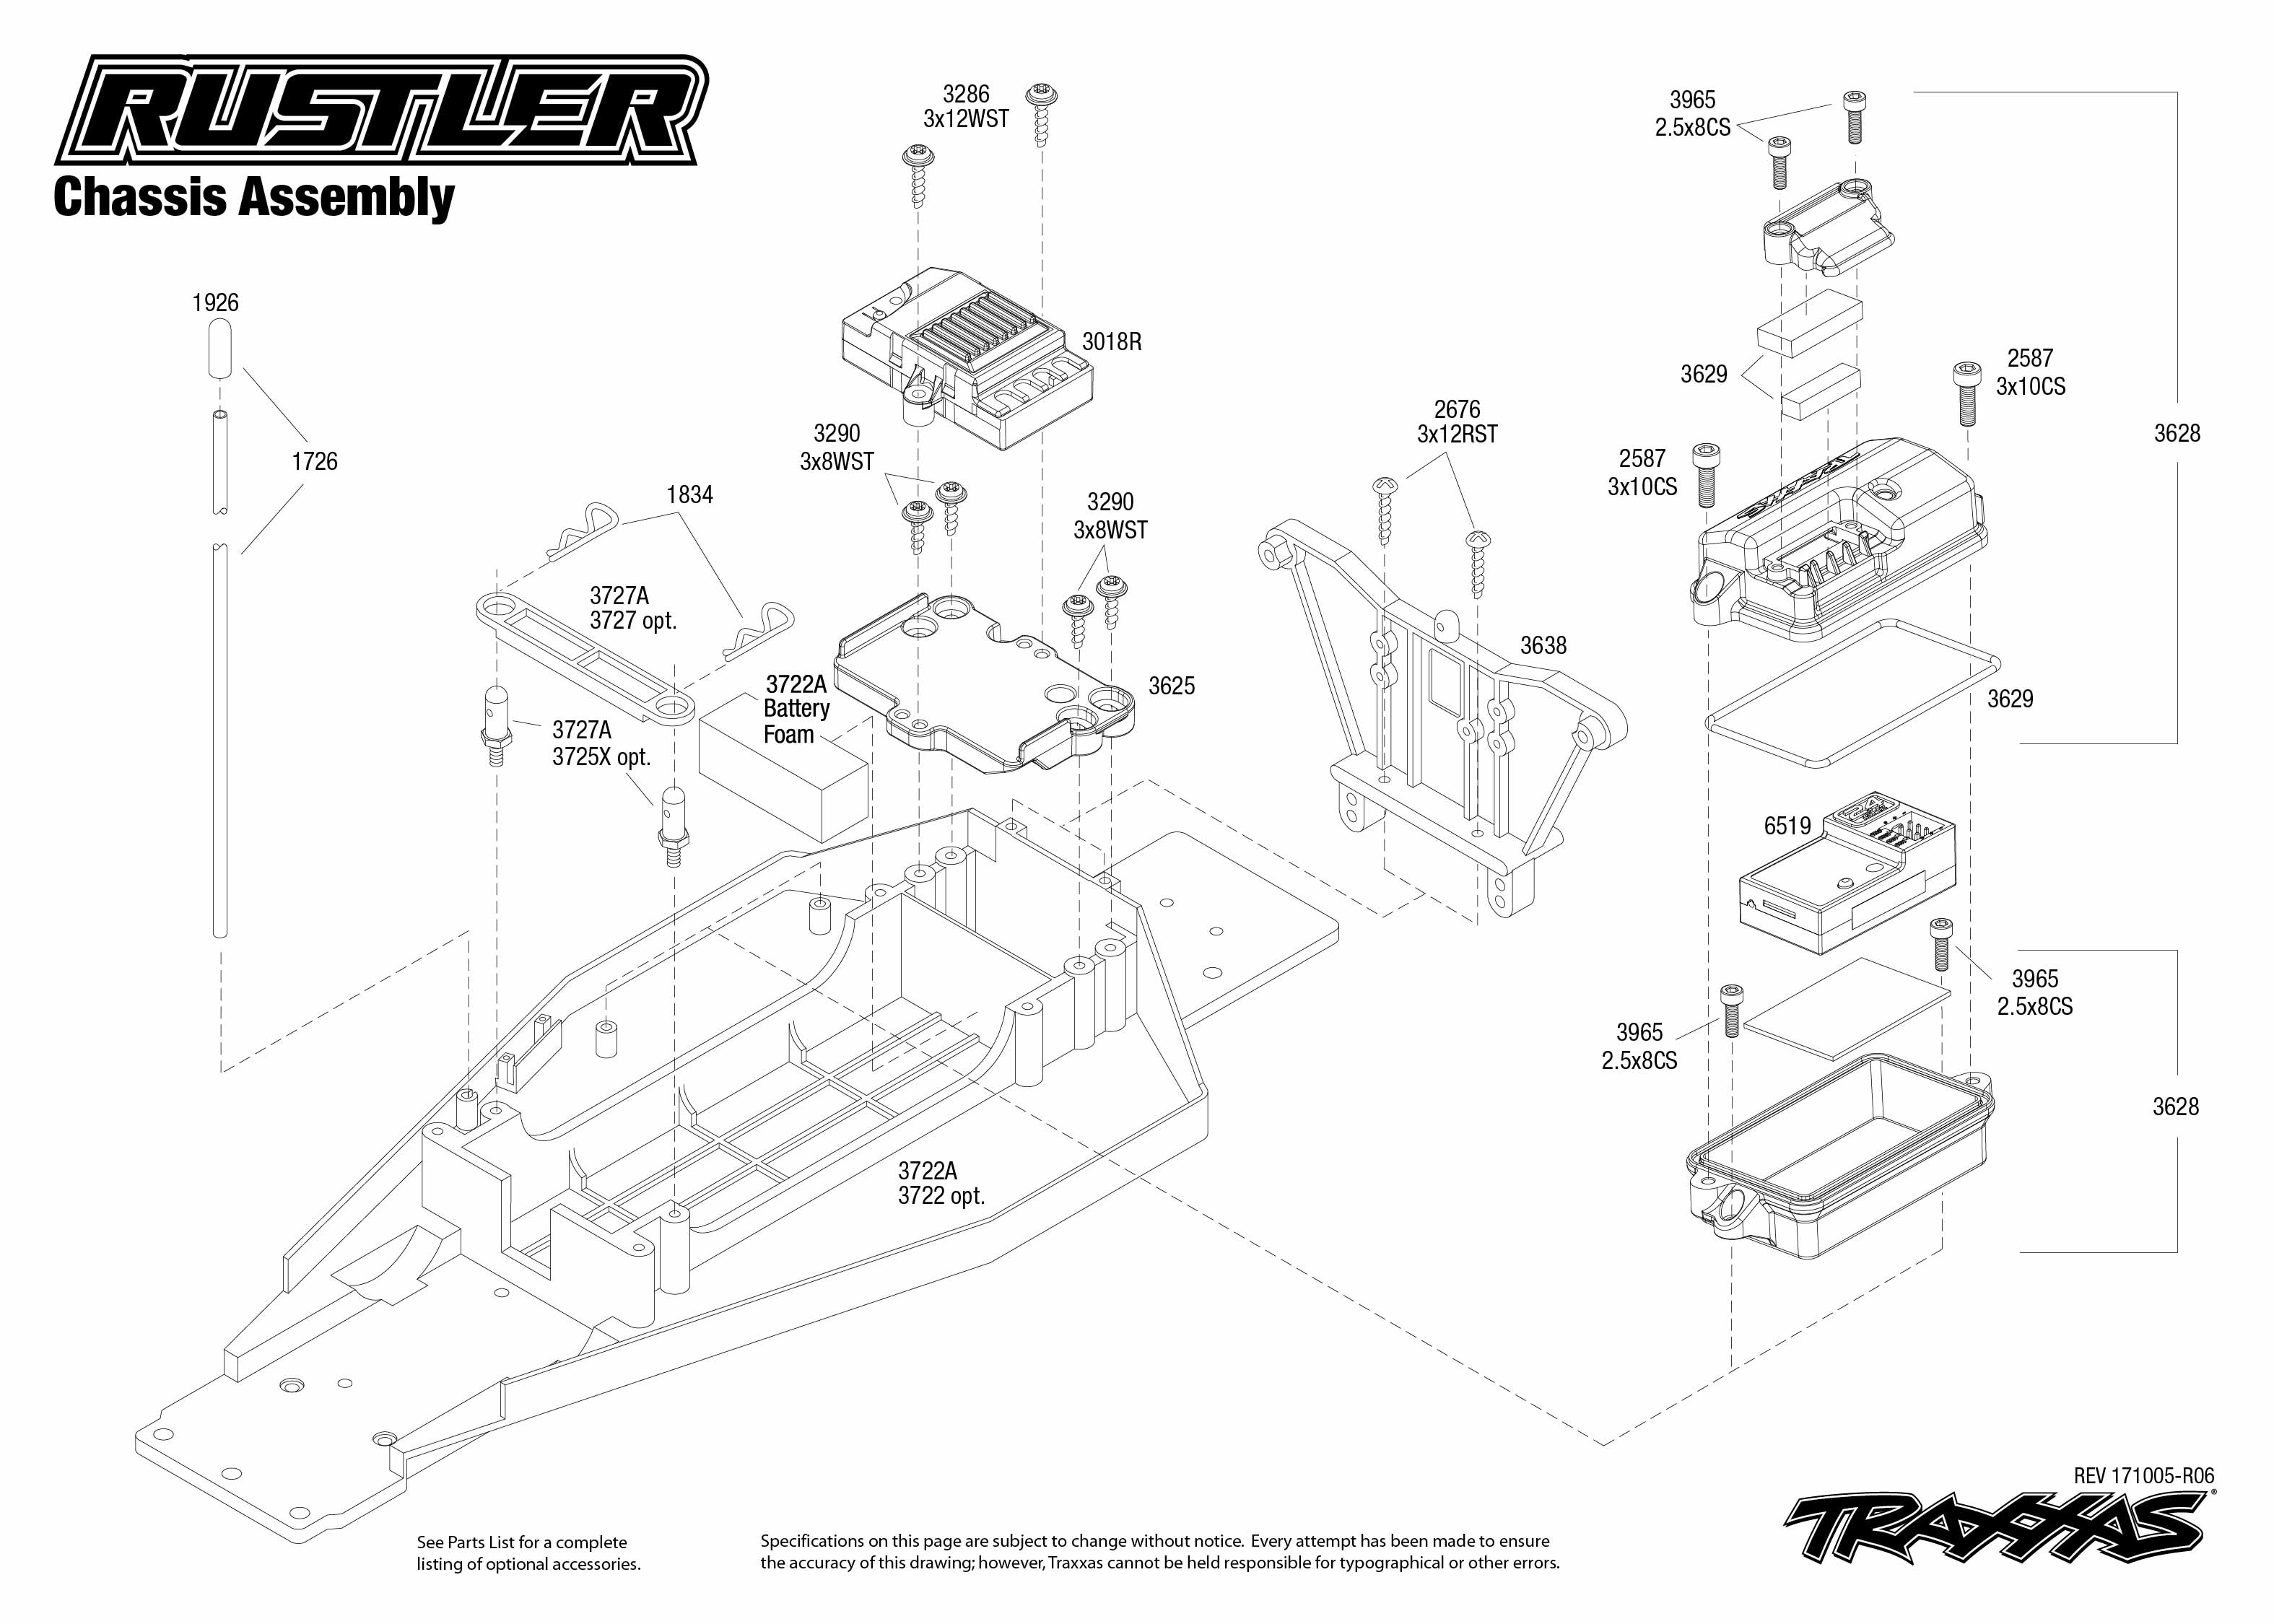 Traxxas Stampede Chassis Parts Diagram Wiring For Vxl Slash 4x4 Exploded View Rustler 37054 1 Assembly Rh Com Xl